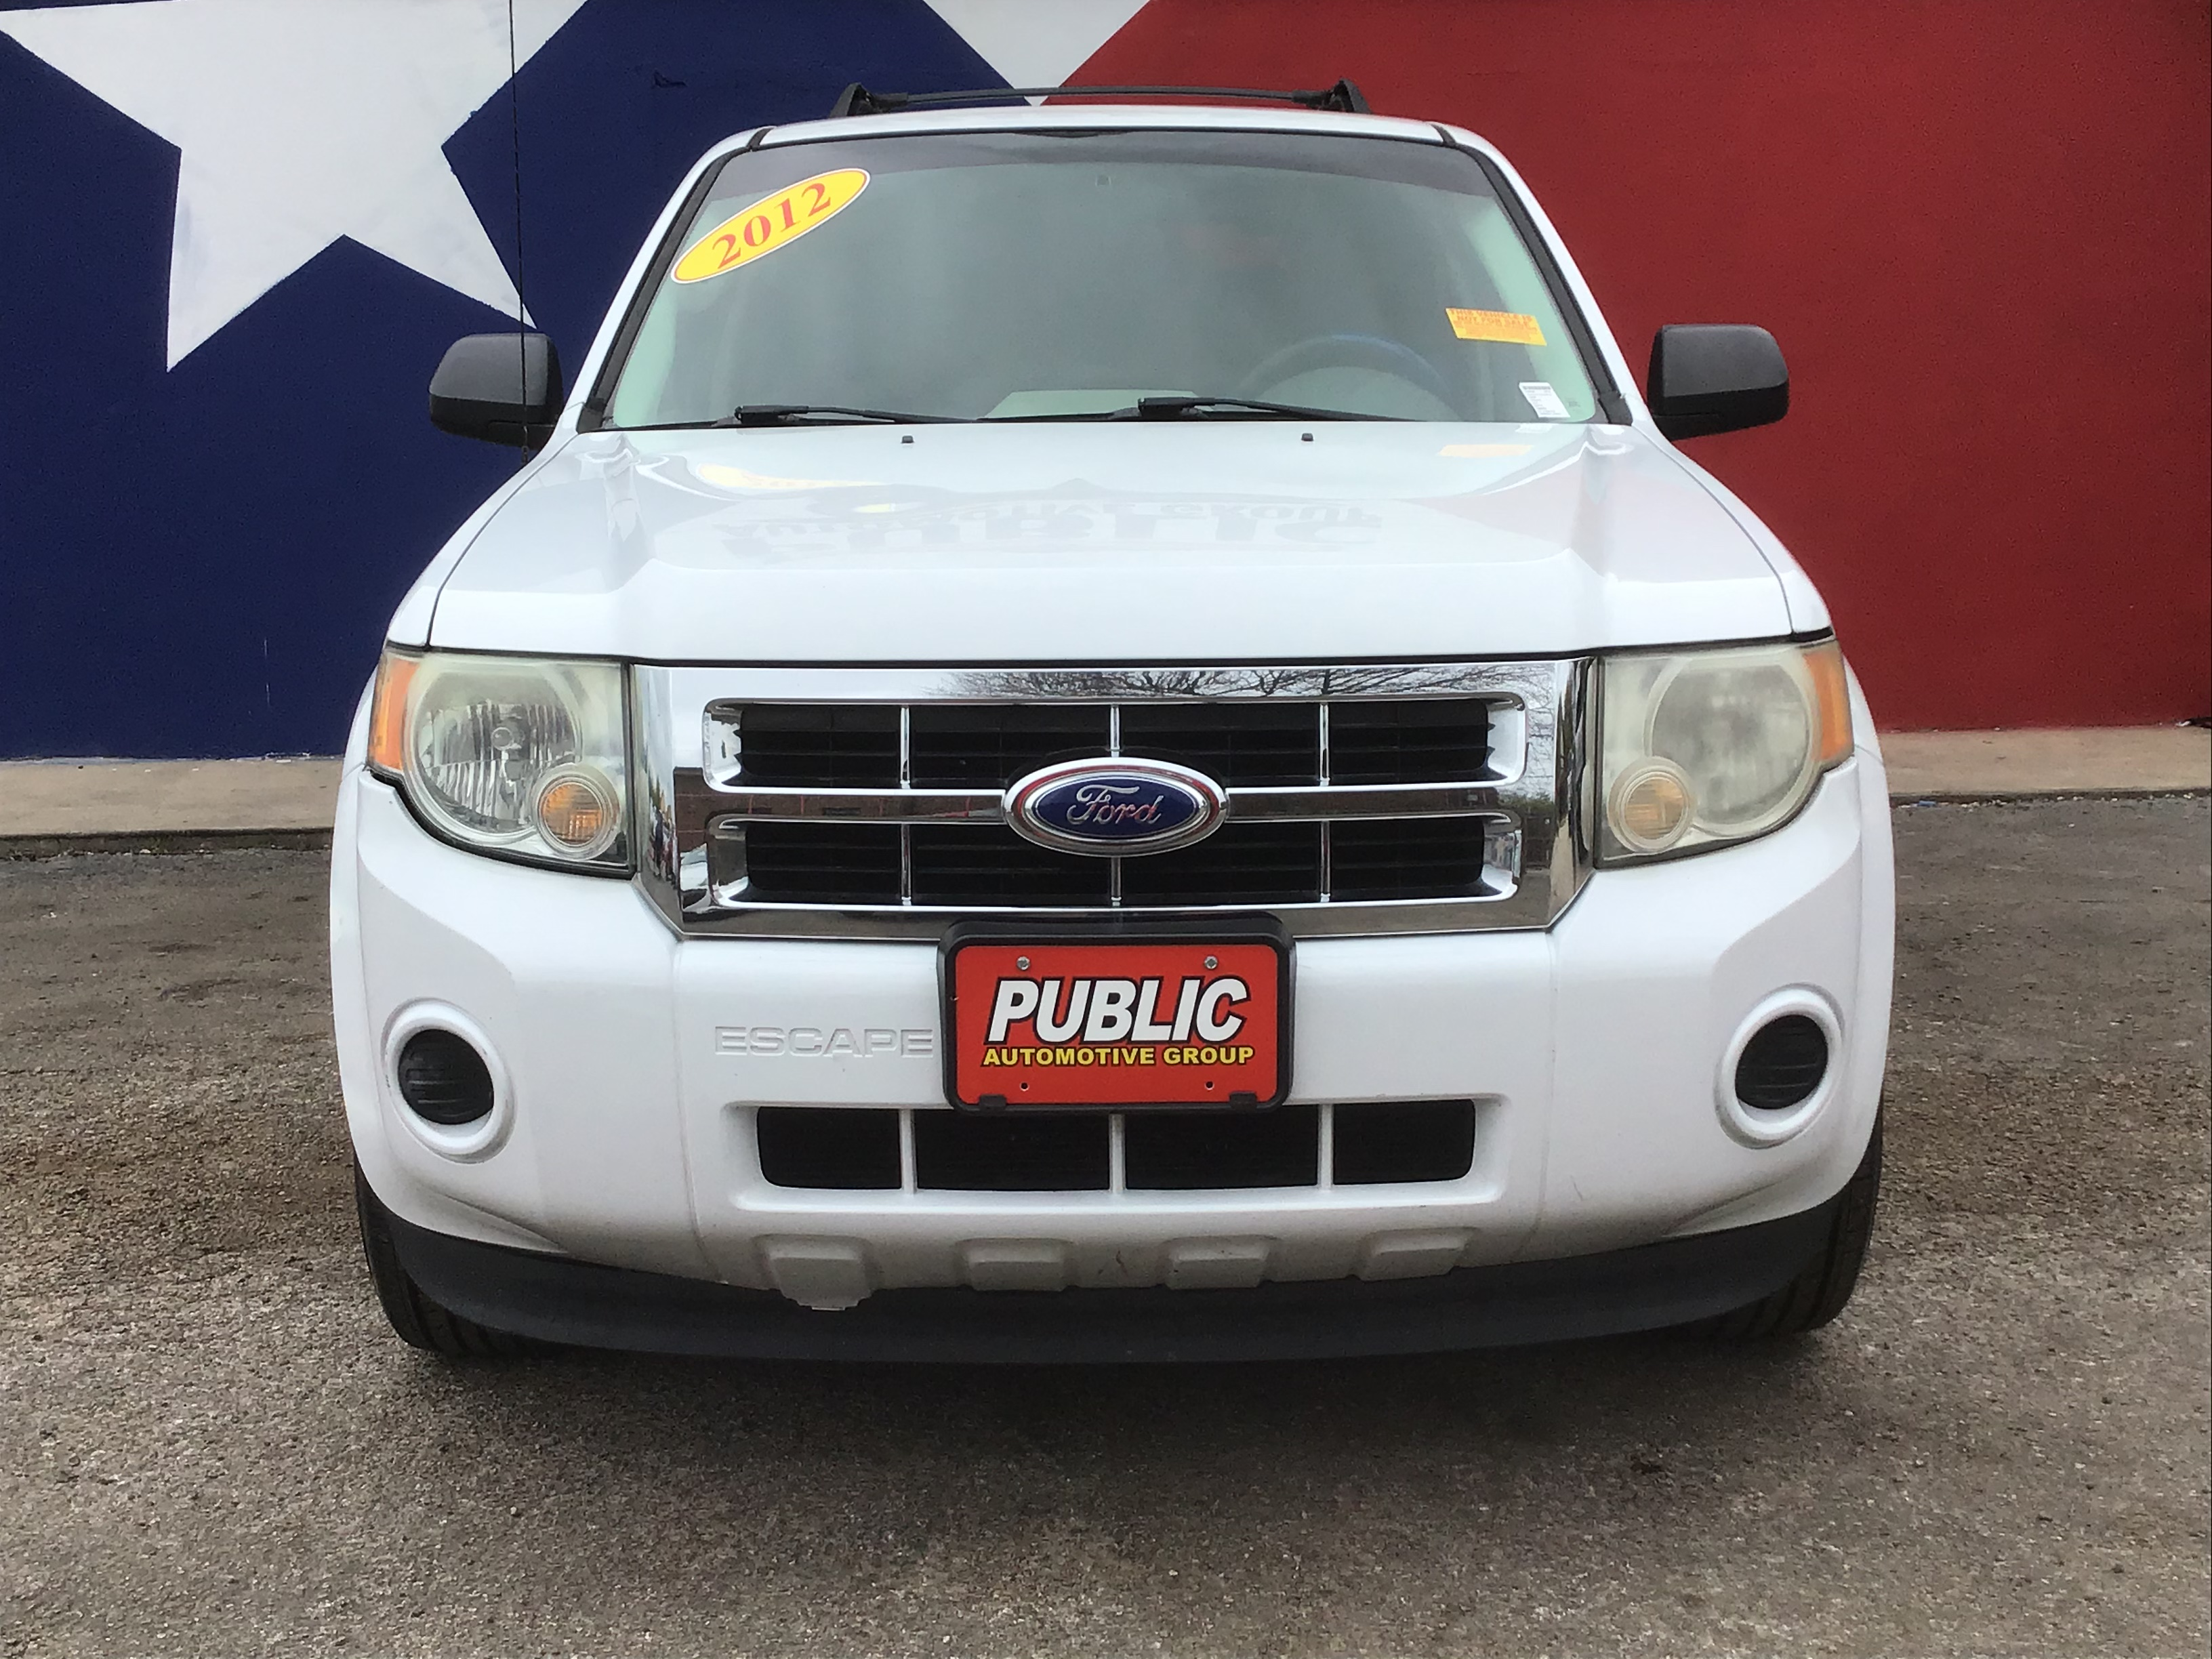 used vehicle - 4 door FORD ESCAPE 2012